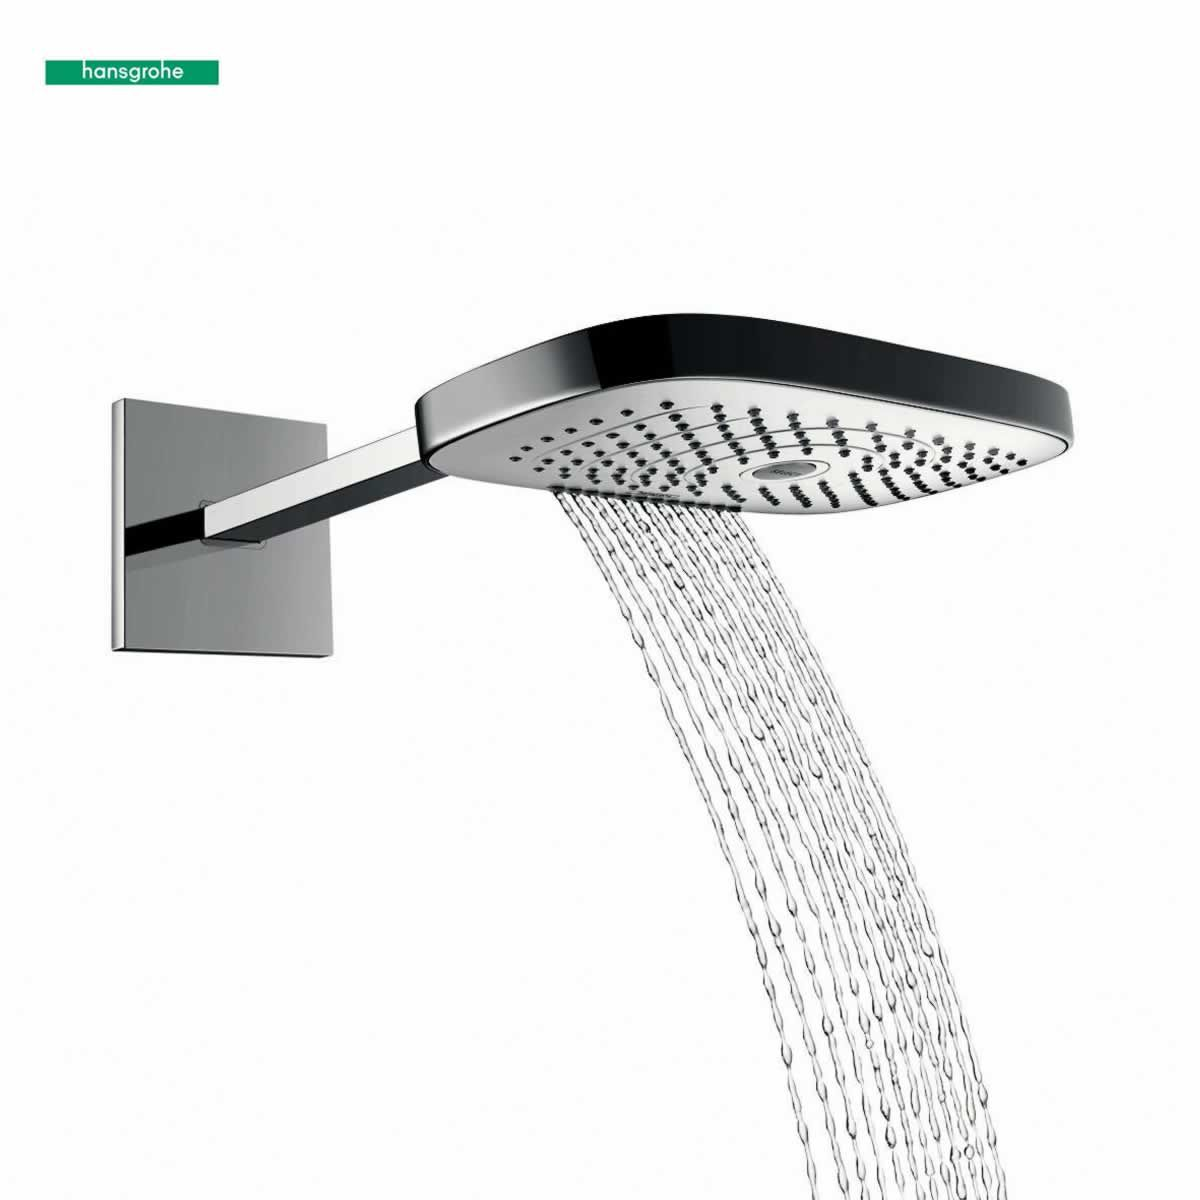 hansgrohe raindance select e 300 3jet overhead deluge uk. Black Bedroom Furniture Sets. Home Design Ideas